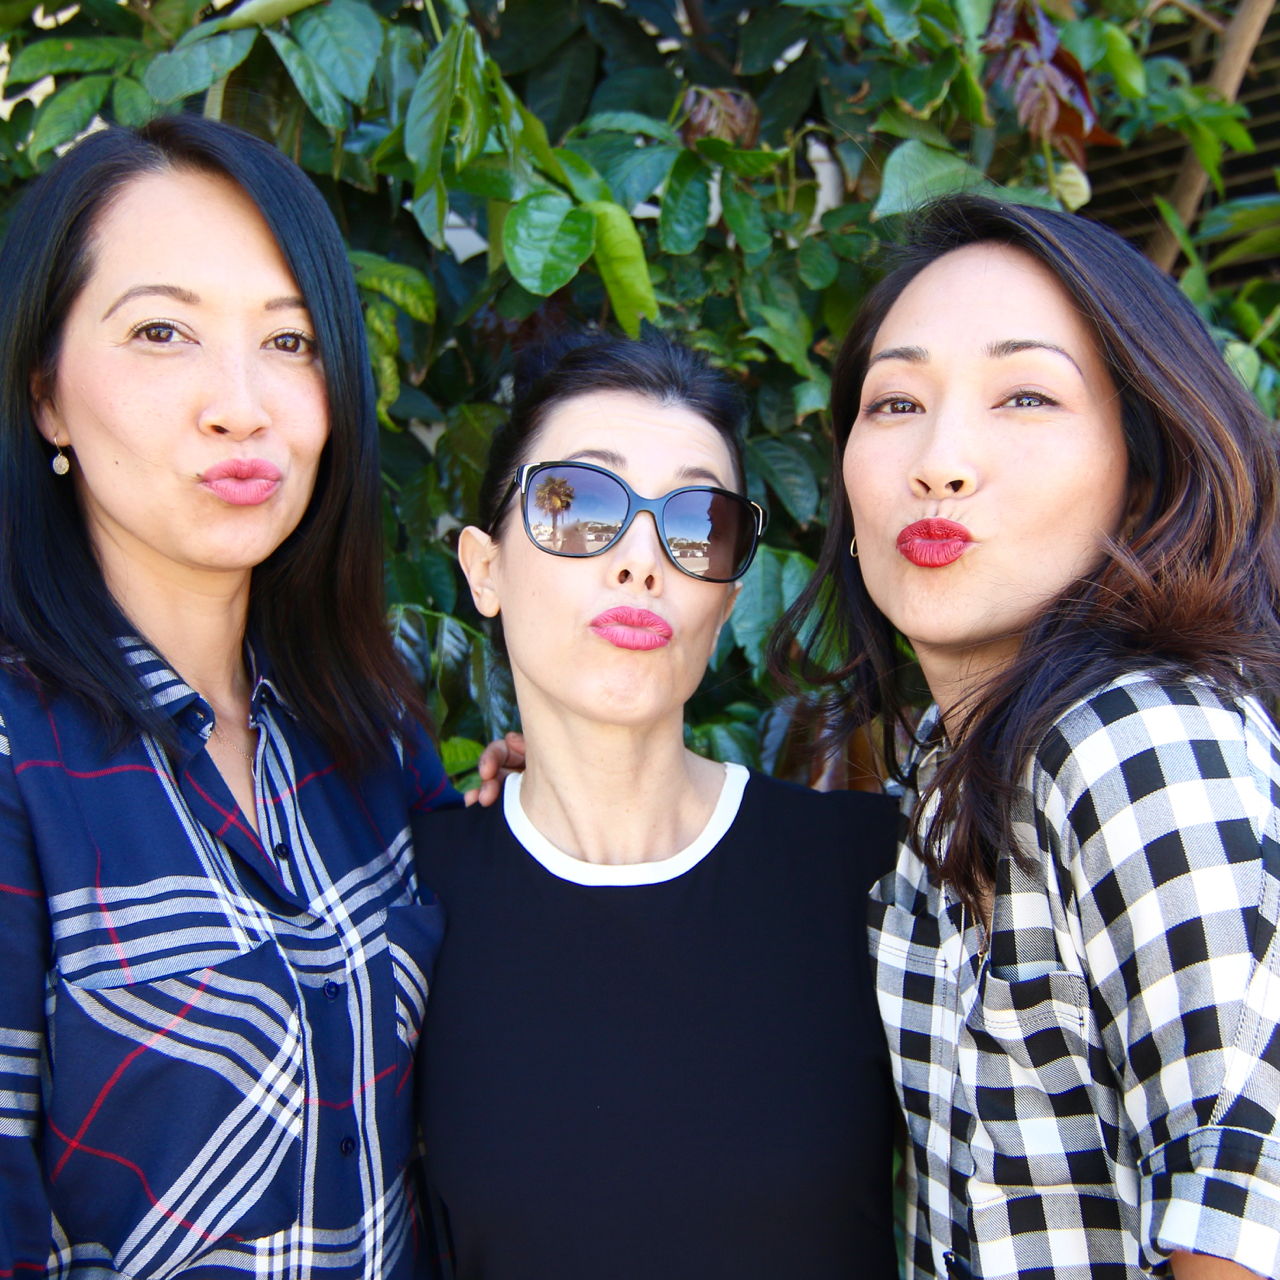 Three women blowing kisses showing their lipstick color